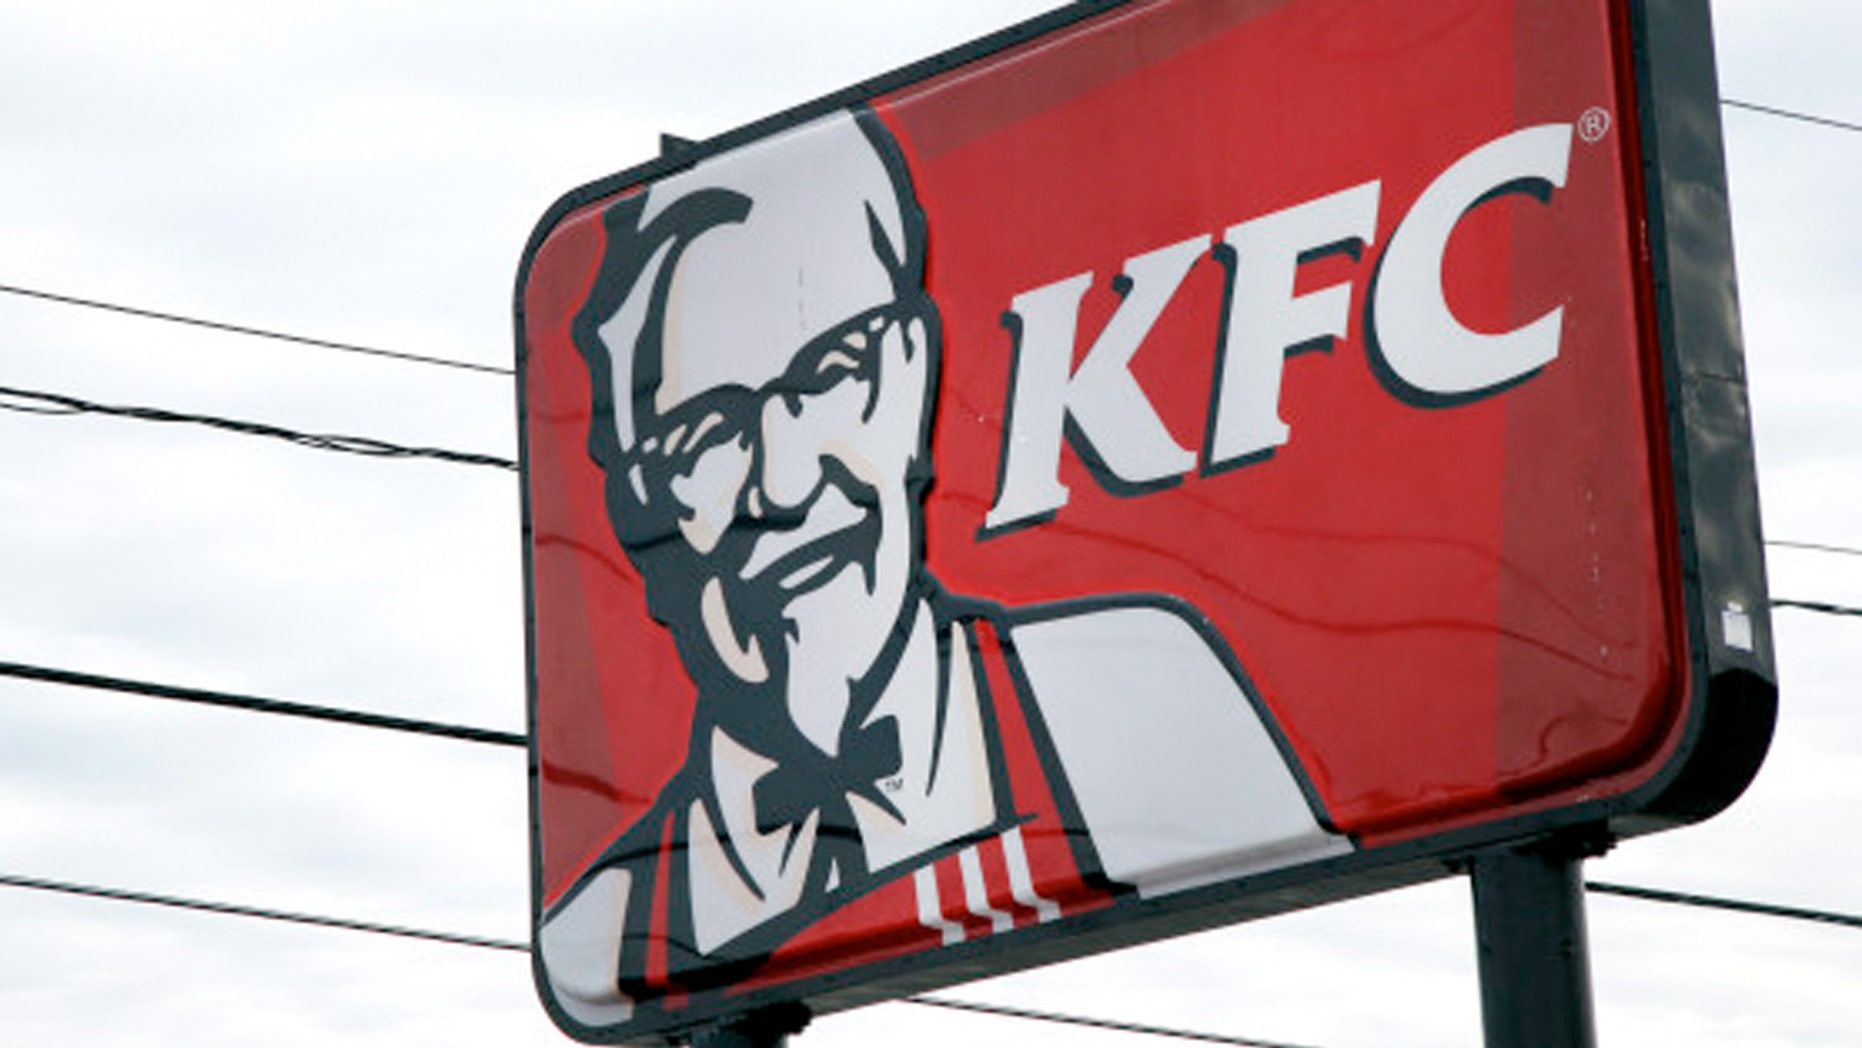 Kentucky Fried Chicken is channeling Colonel Sanders to revive its business.